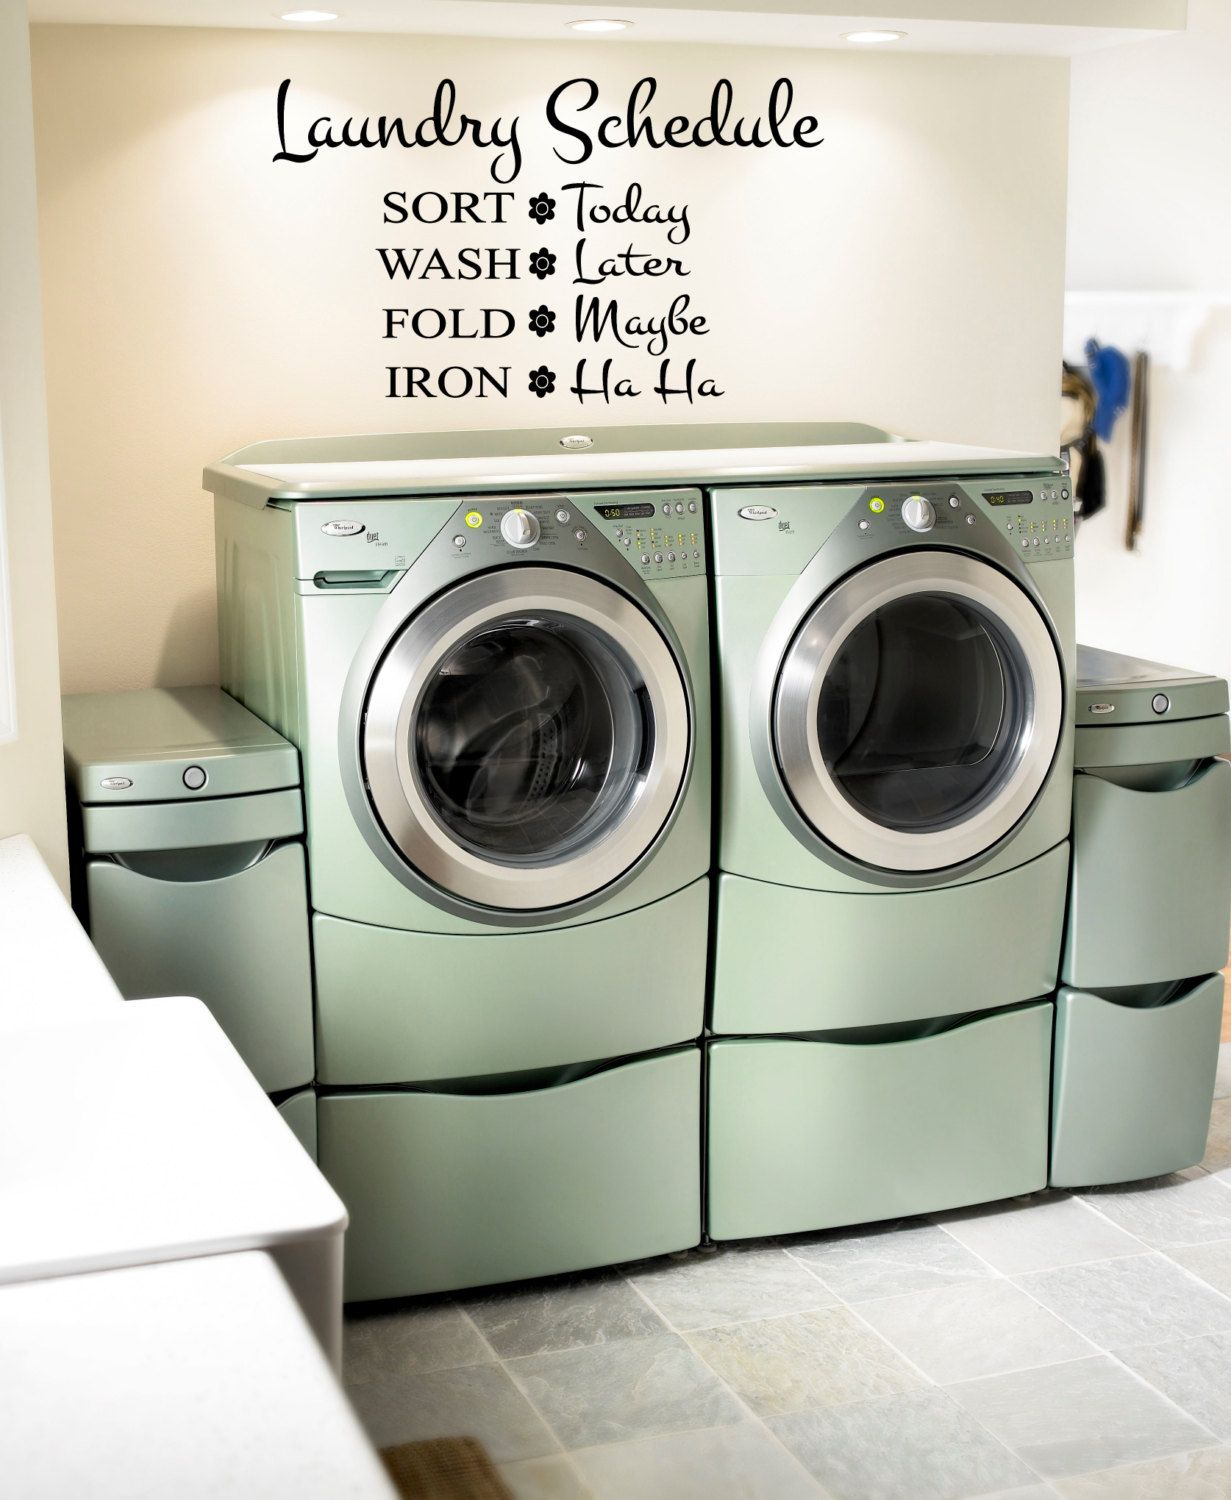 Laundry Decal Wall Decor Beauteous Laundry Schedule Sort Today Wash Later Fold Maybe Iron Ha Ha Decorating Design